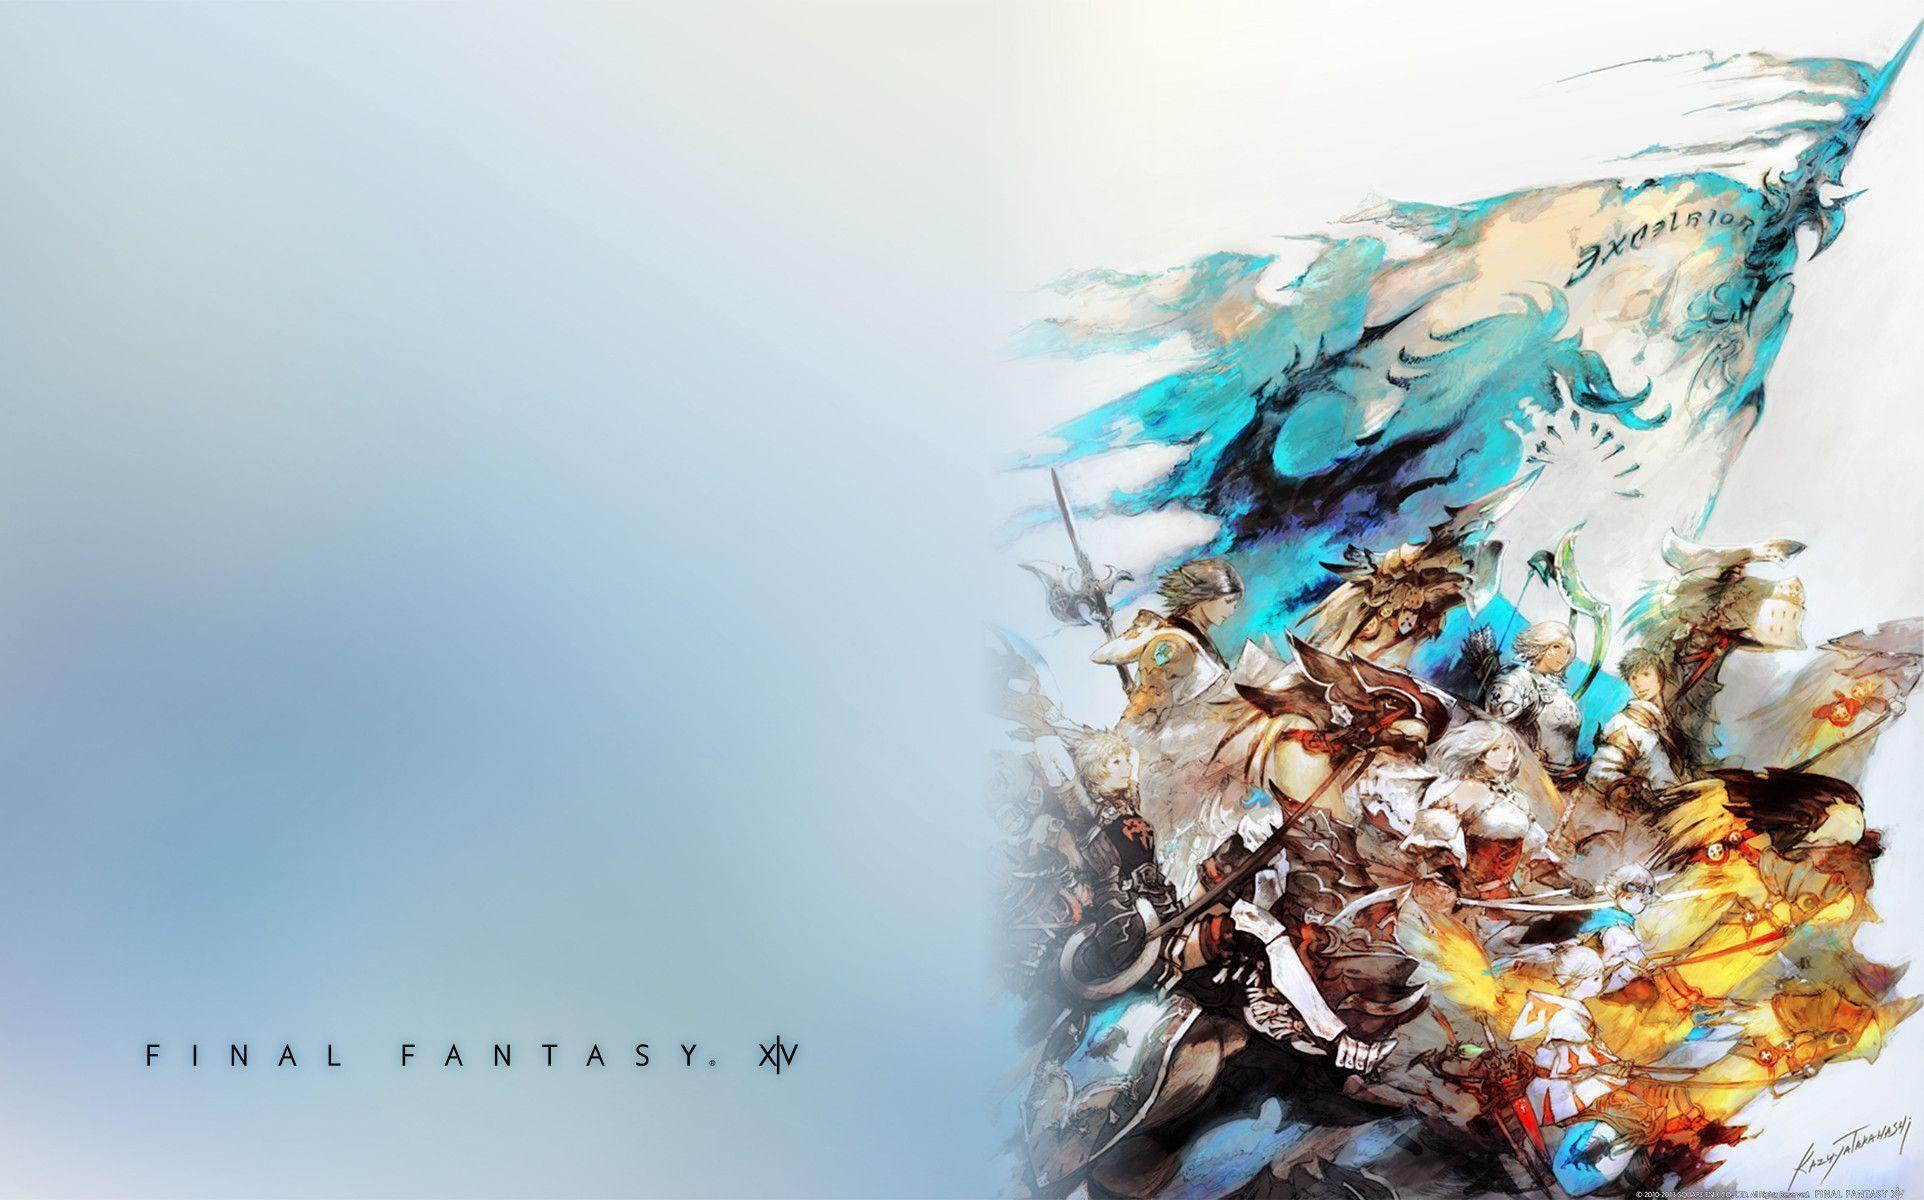 Official Final Fantasy XIV Themes/Wallpapers Released for PC and